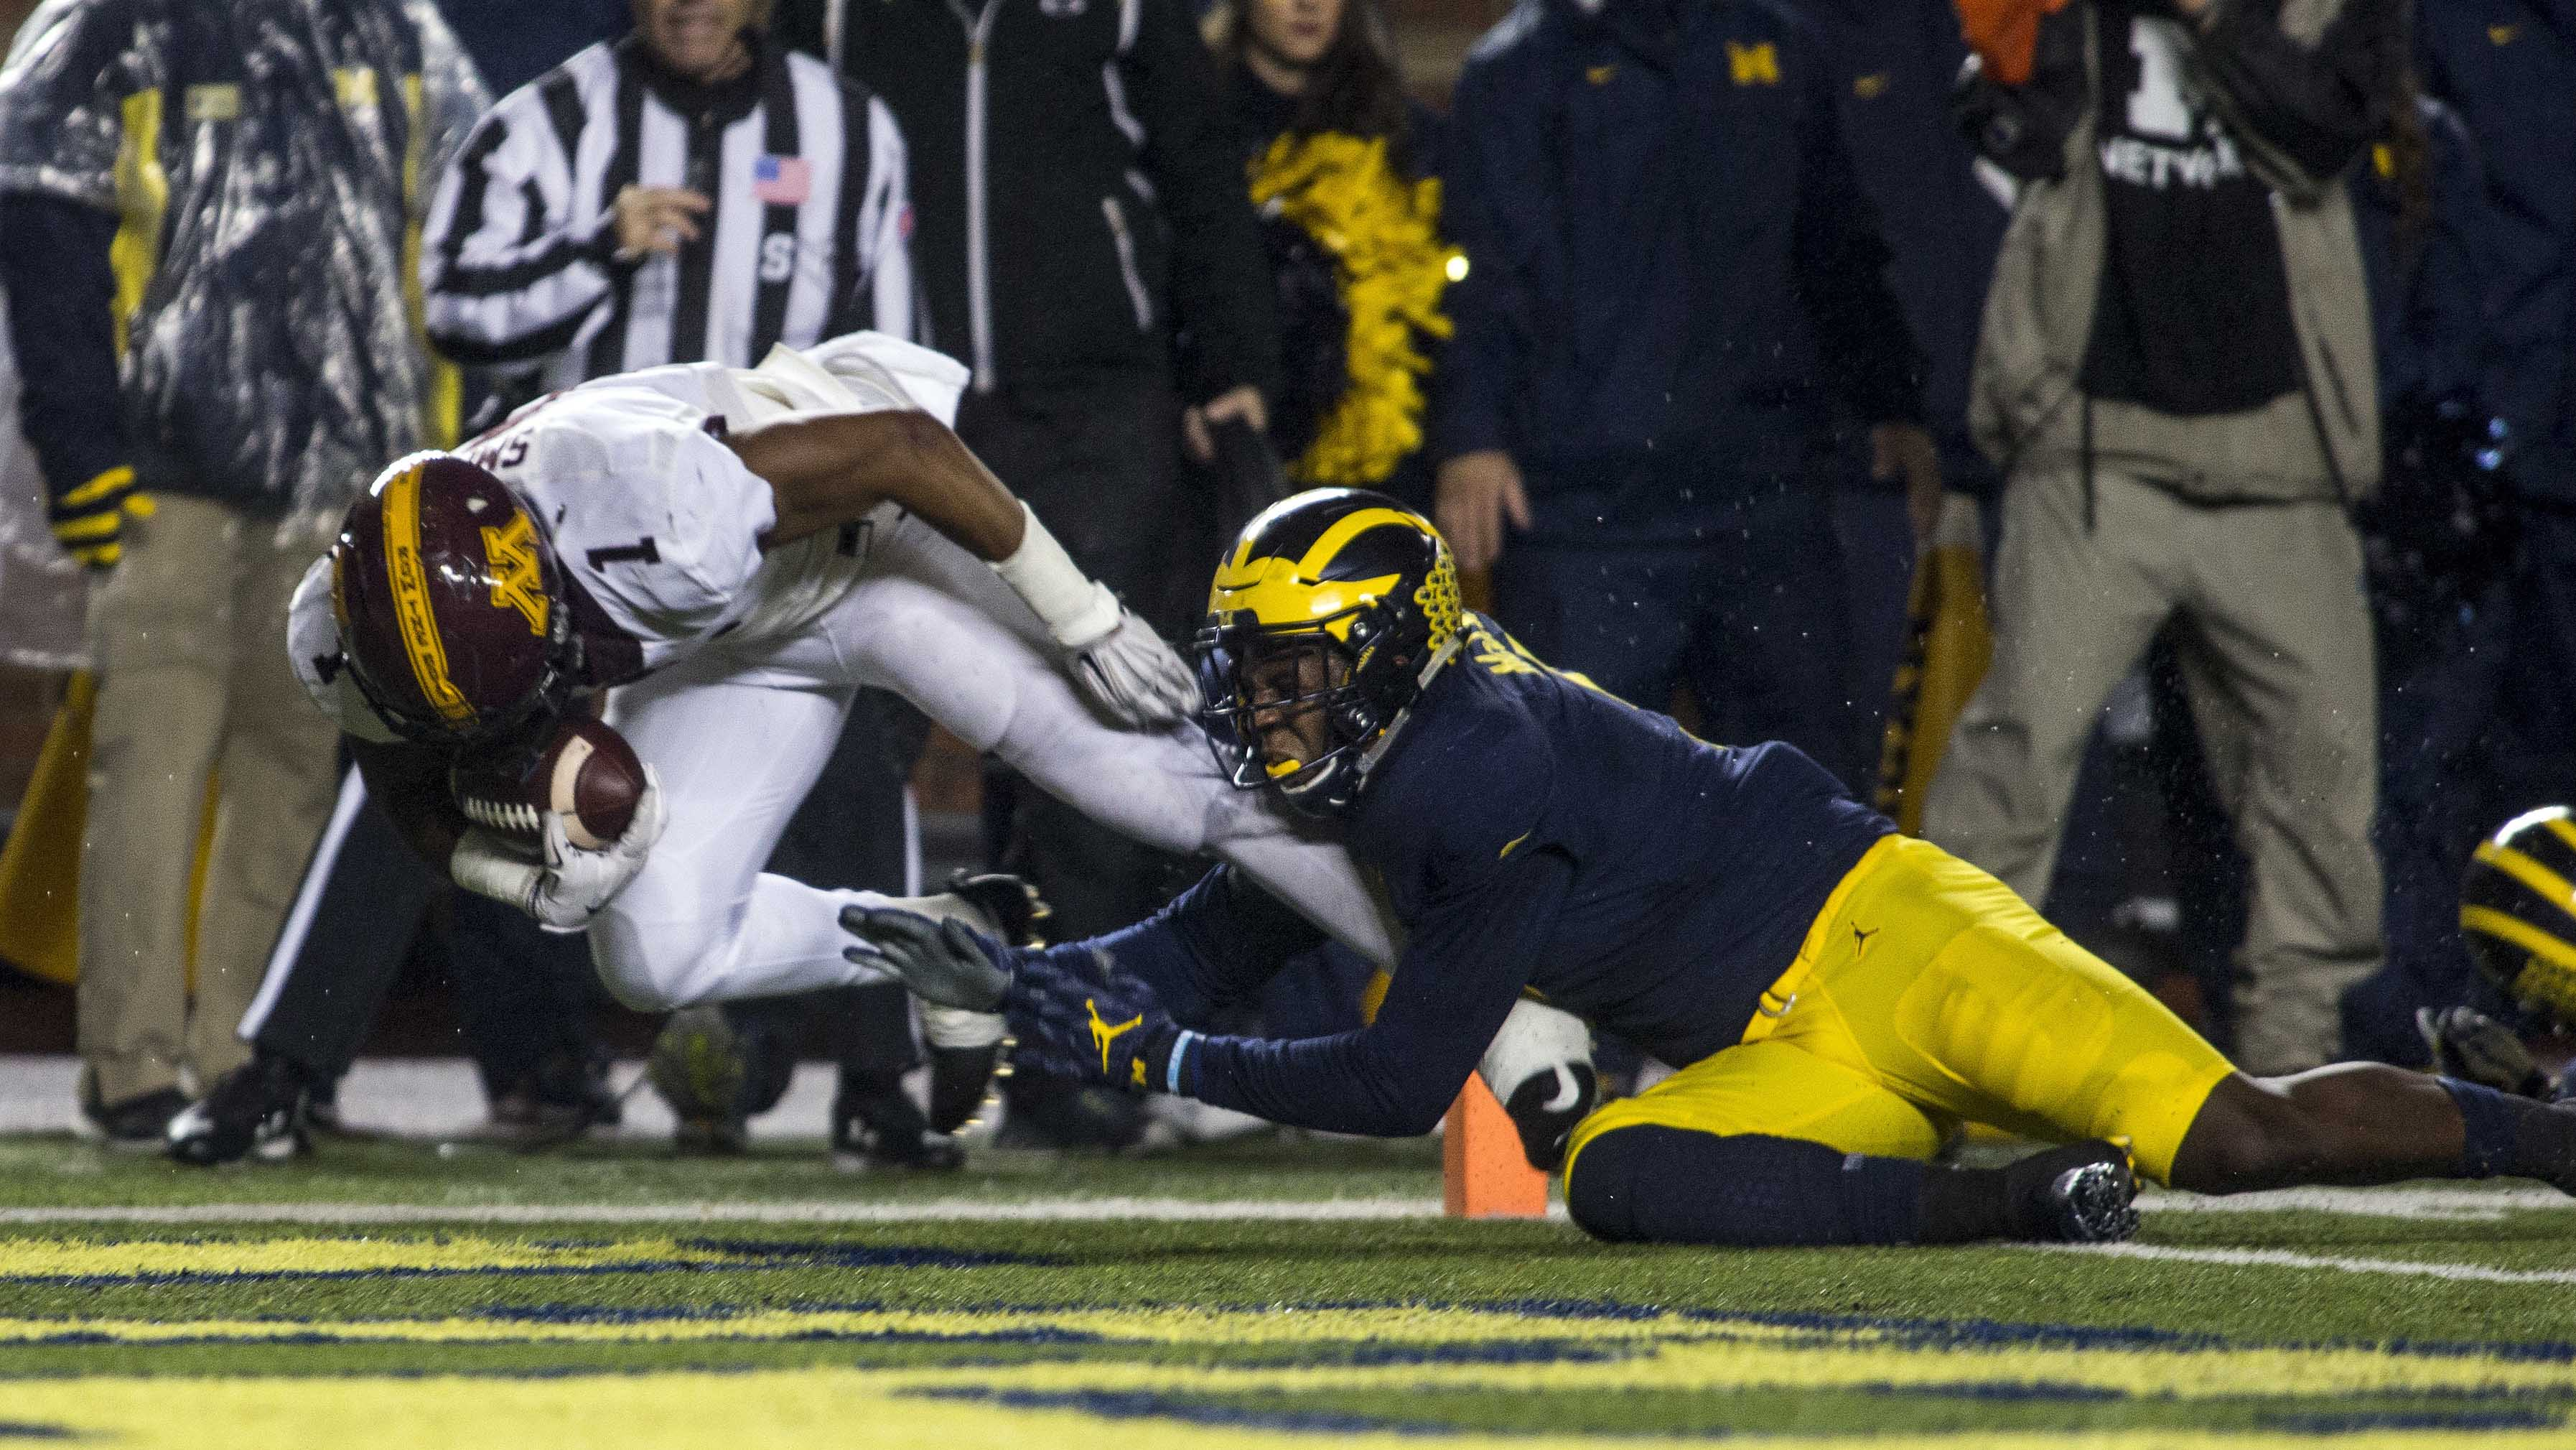 Minnesota running back Rodney Smith (1) scores a touchdown, defended by Michigan linebacker Mike McCray, right, in the first quarter of an NCAA college football game in Ann Arbor, Mich., Saturday, Nov. 4, 2017. (AP Photo/Tony Ding)